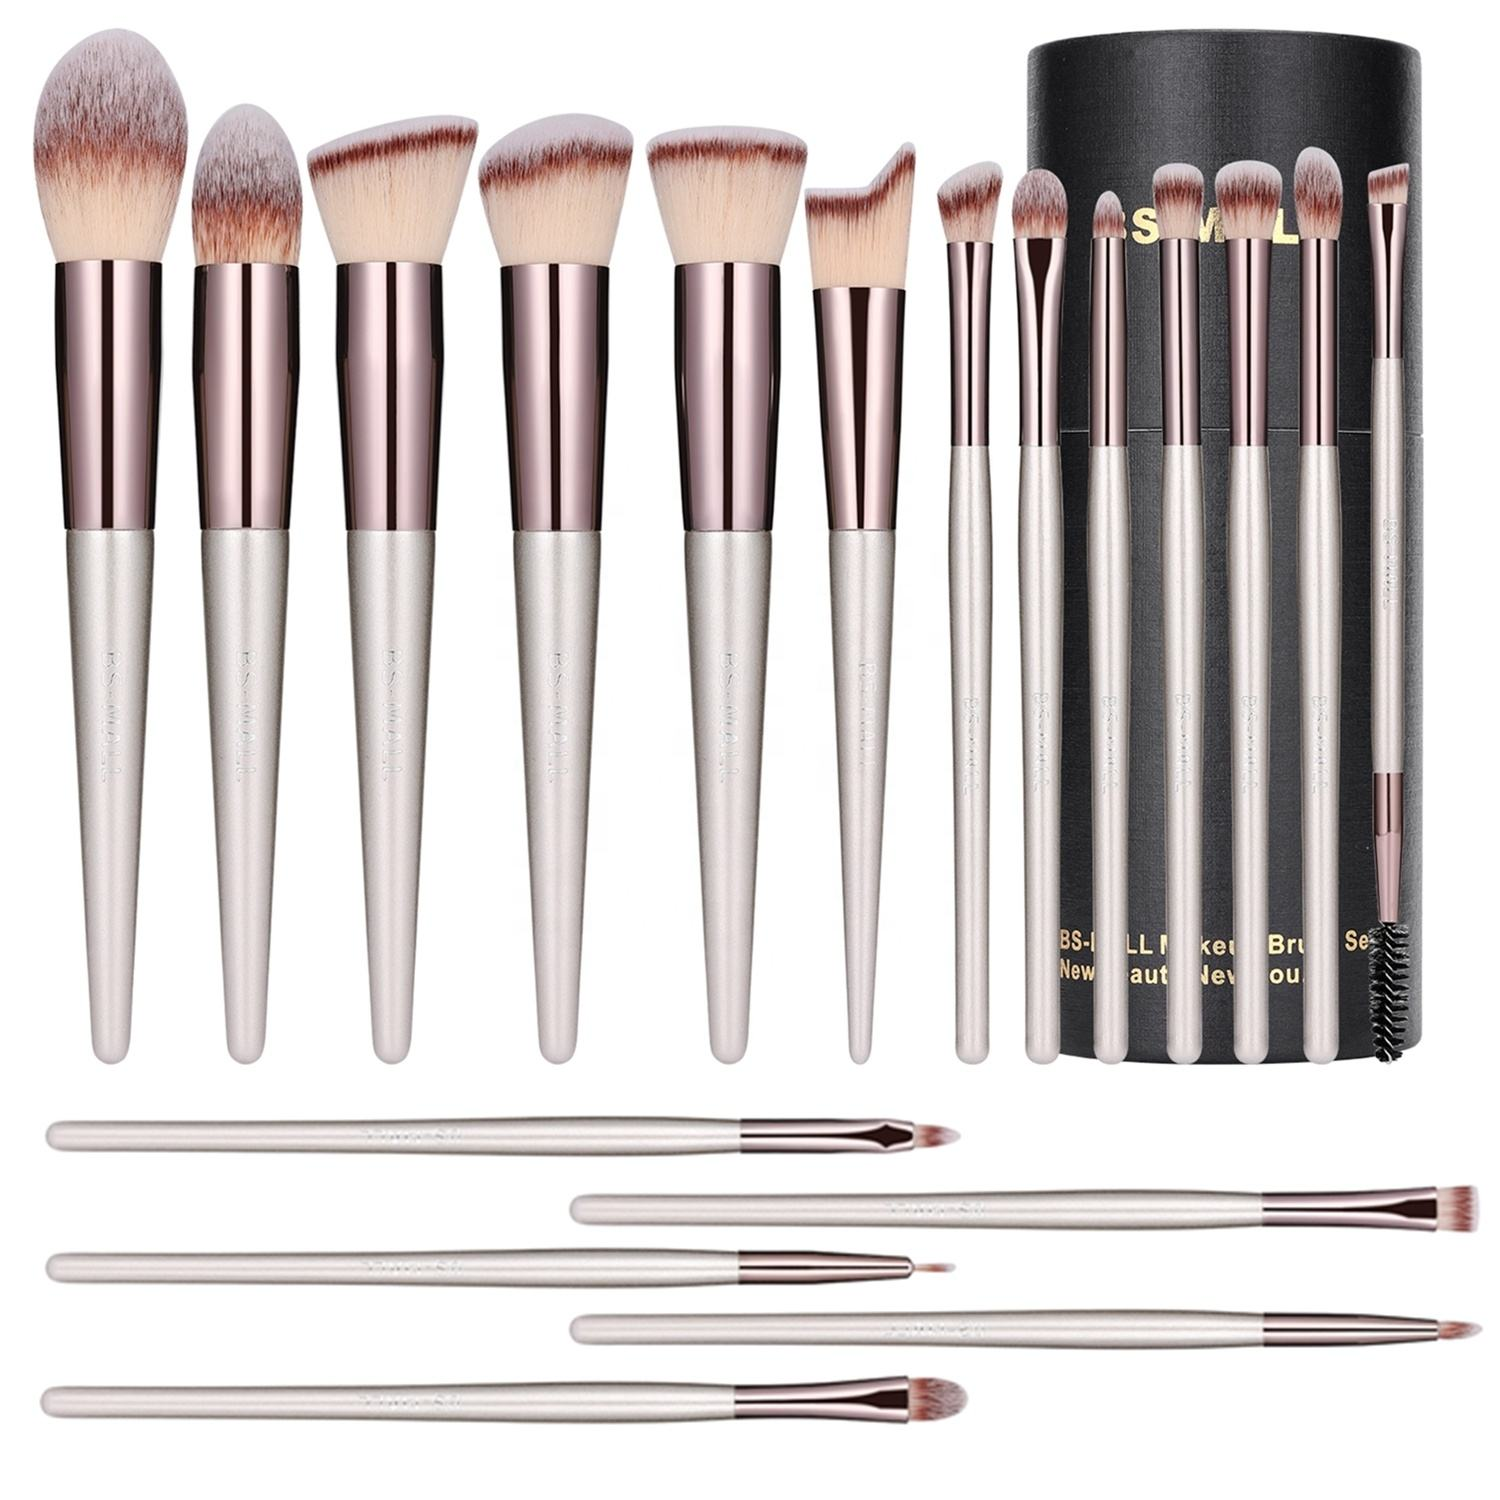 BS-MALL High quality champagne gold wholesale makeup brush bs mall makeup brush kits 18pcs make up brushes set with case